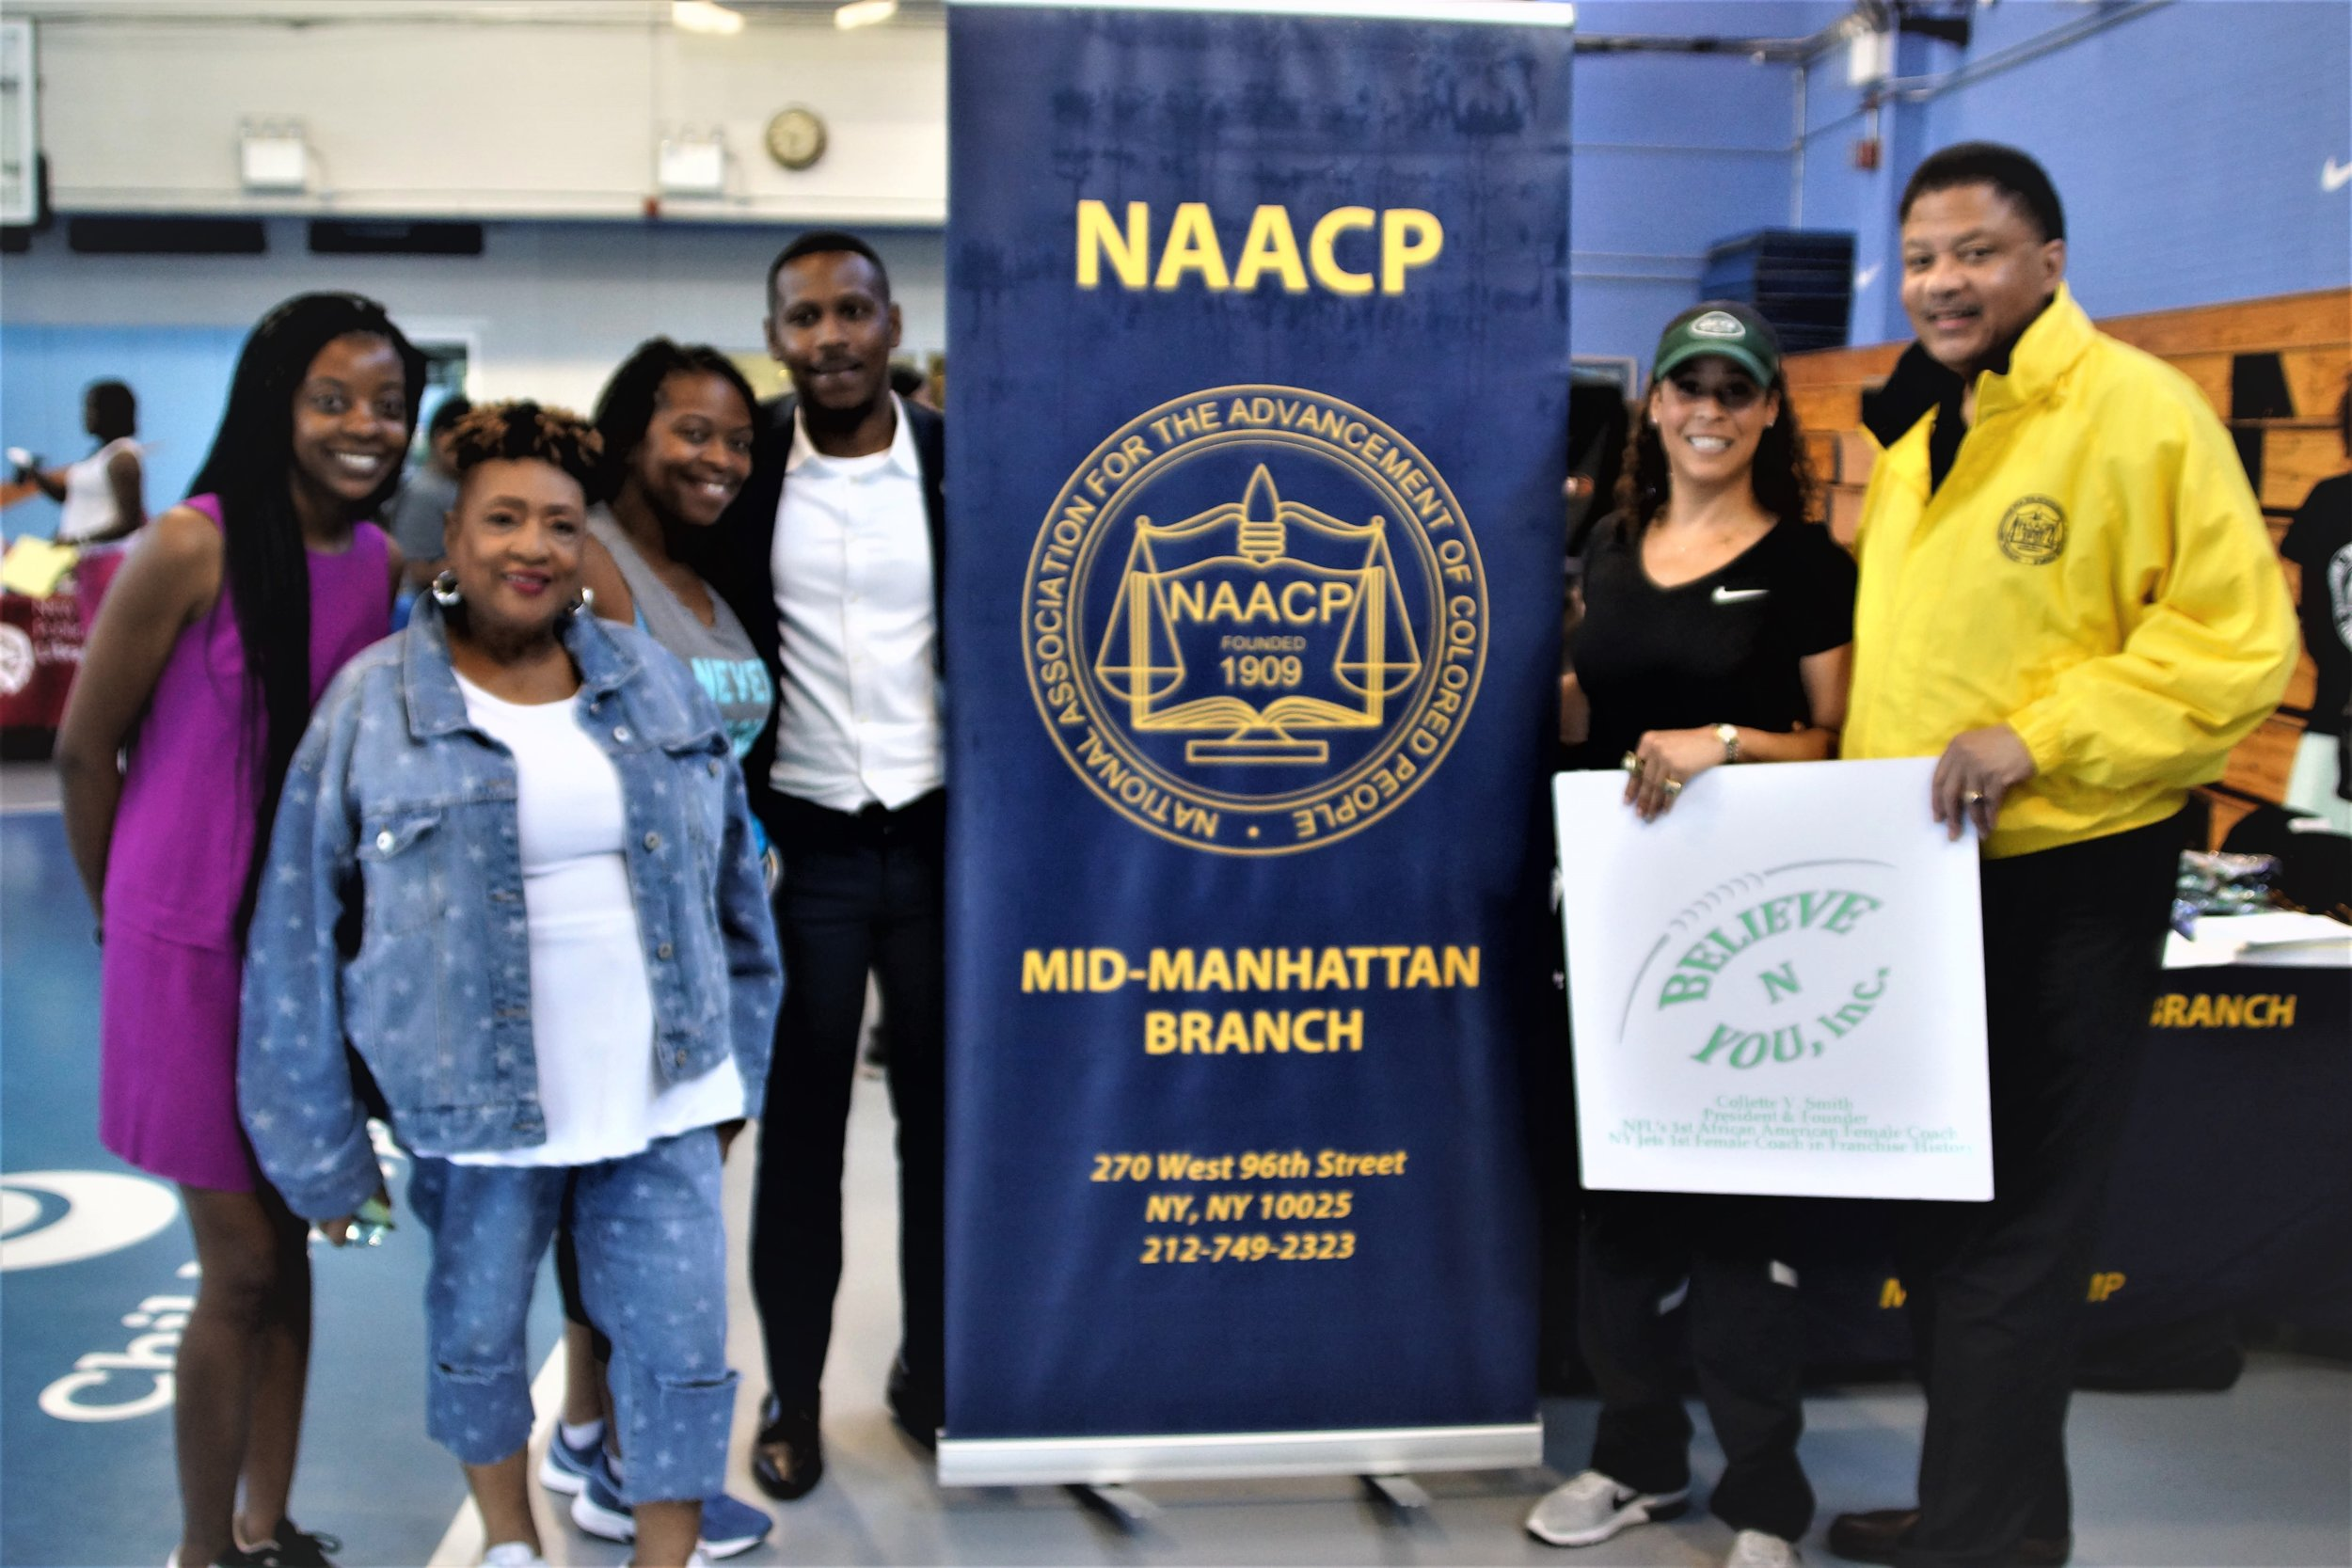 L-R; civic engagement chair Leilani Irvin, Harlem Mother SAVE FOUNDER Jackie Rowe-Adams, Community Board 10 chair Cicely Harris, Mayor Office of Community Affairs Remmy Salas, Coach Smith & President Eaton